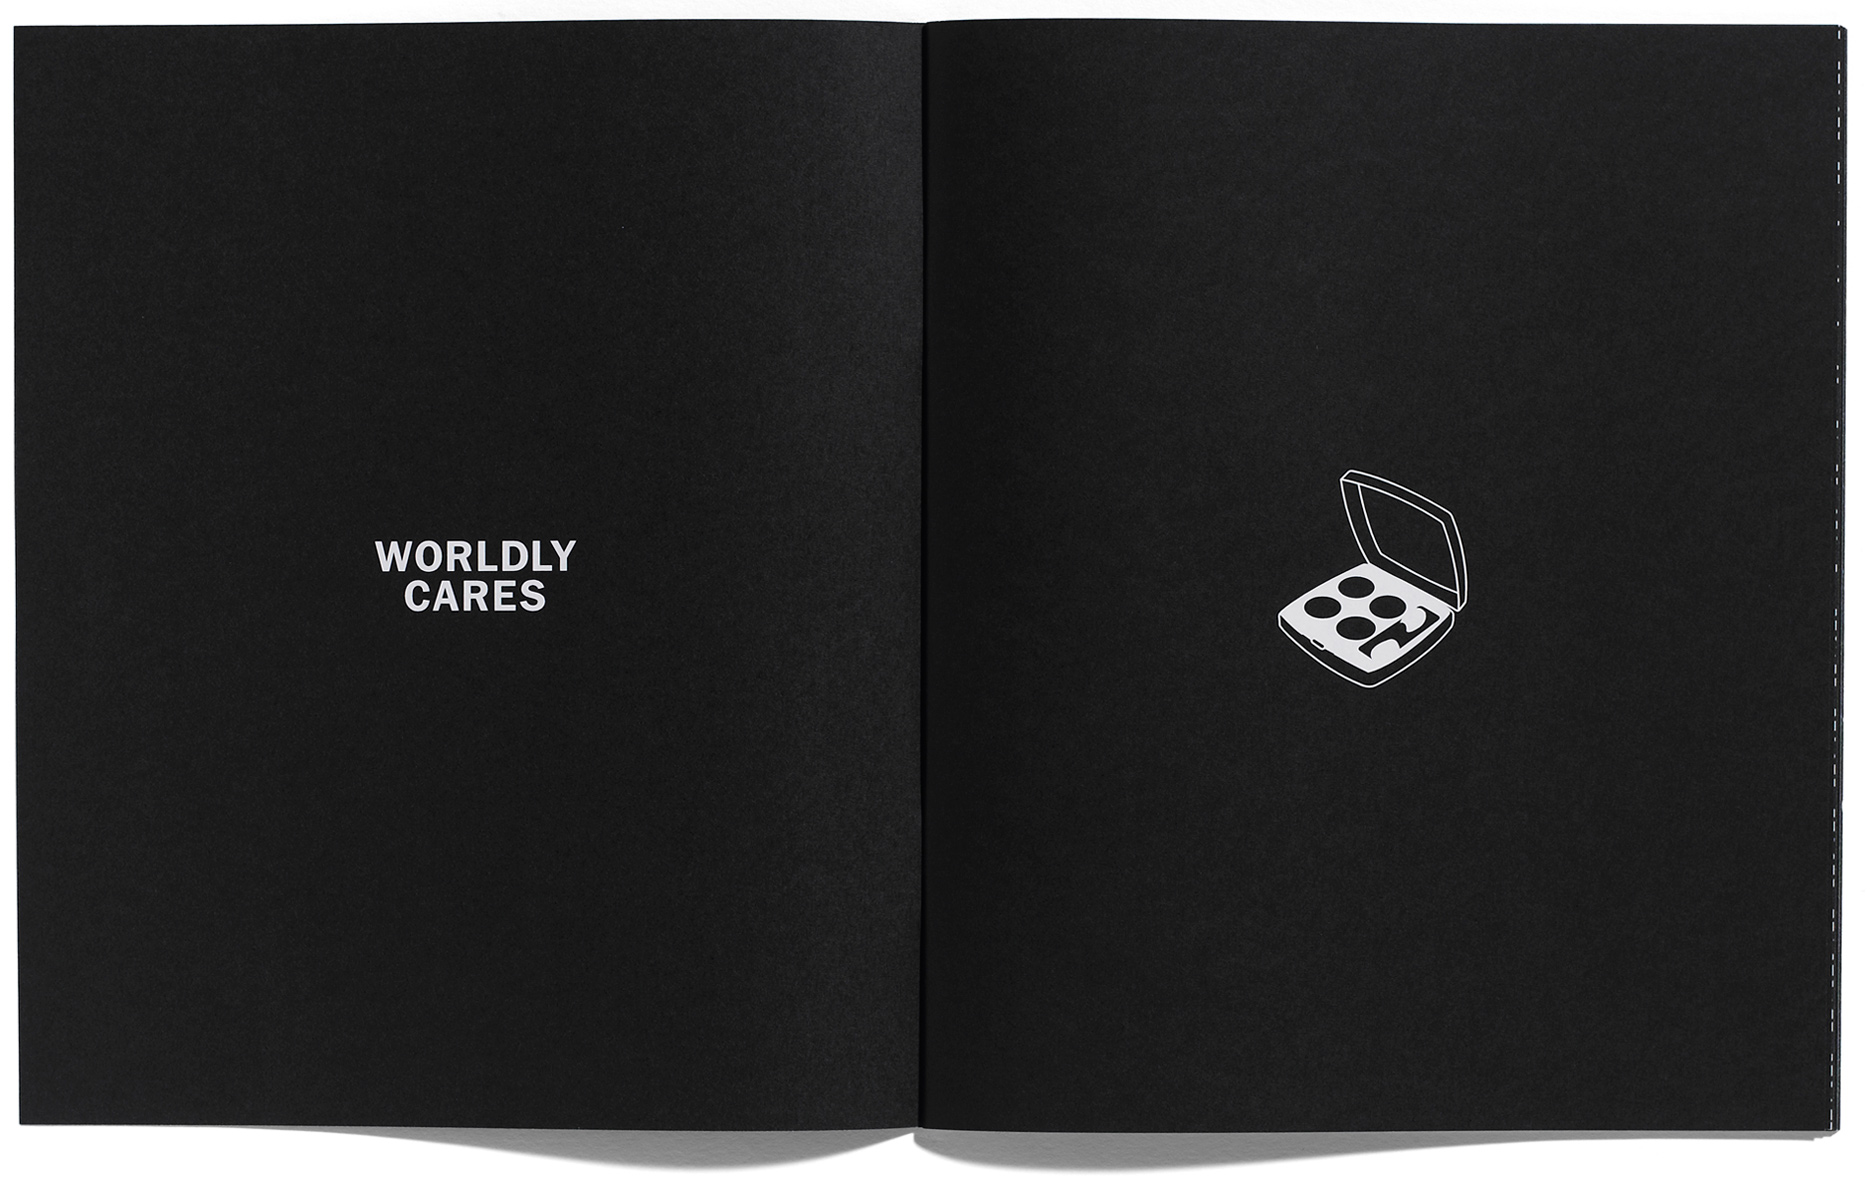 Browns Editions, Browns Editions Publishing, Browns Editions Books, Browns Editions Jonathan Ellery, Browns Editions Worldly Cares and Love Affairs, Browns Editions Jonathan Ellery Worldly Cares and Love Affairs